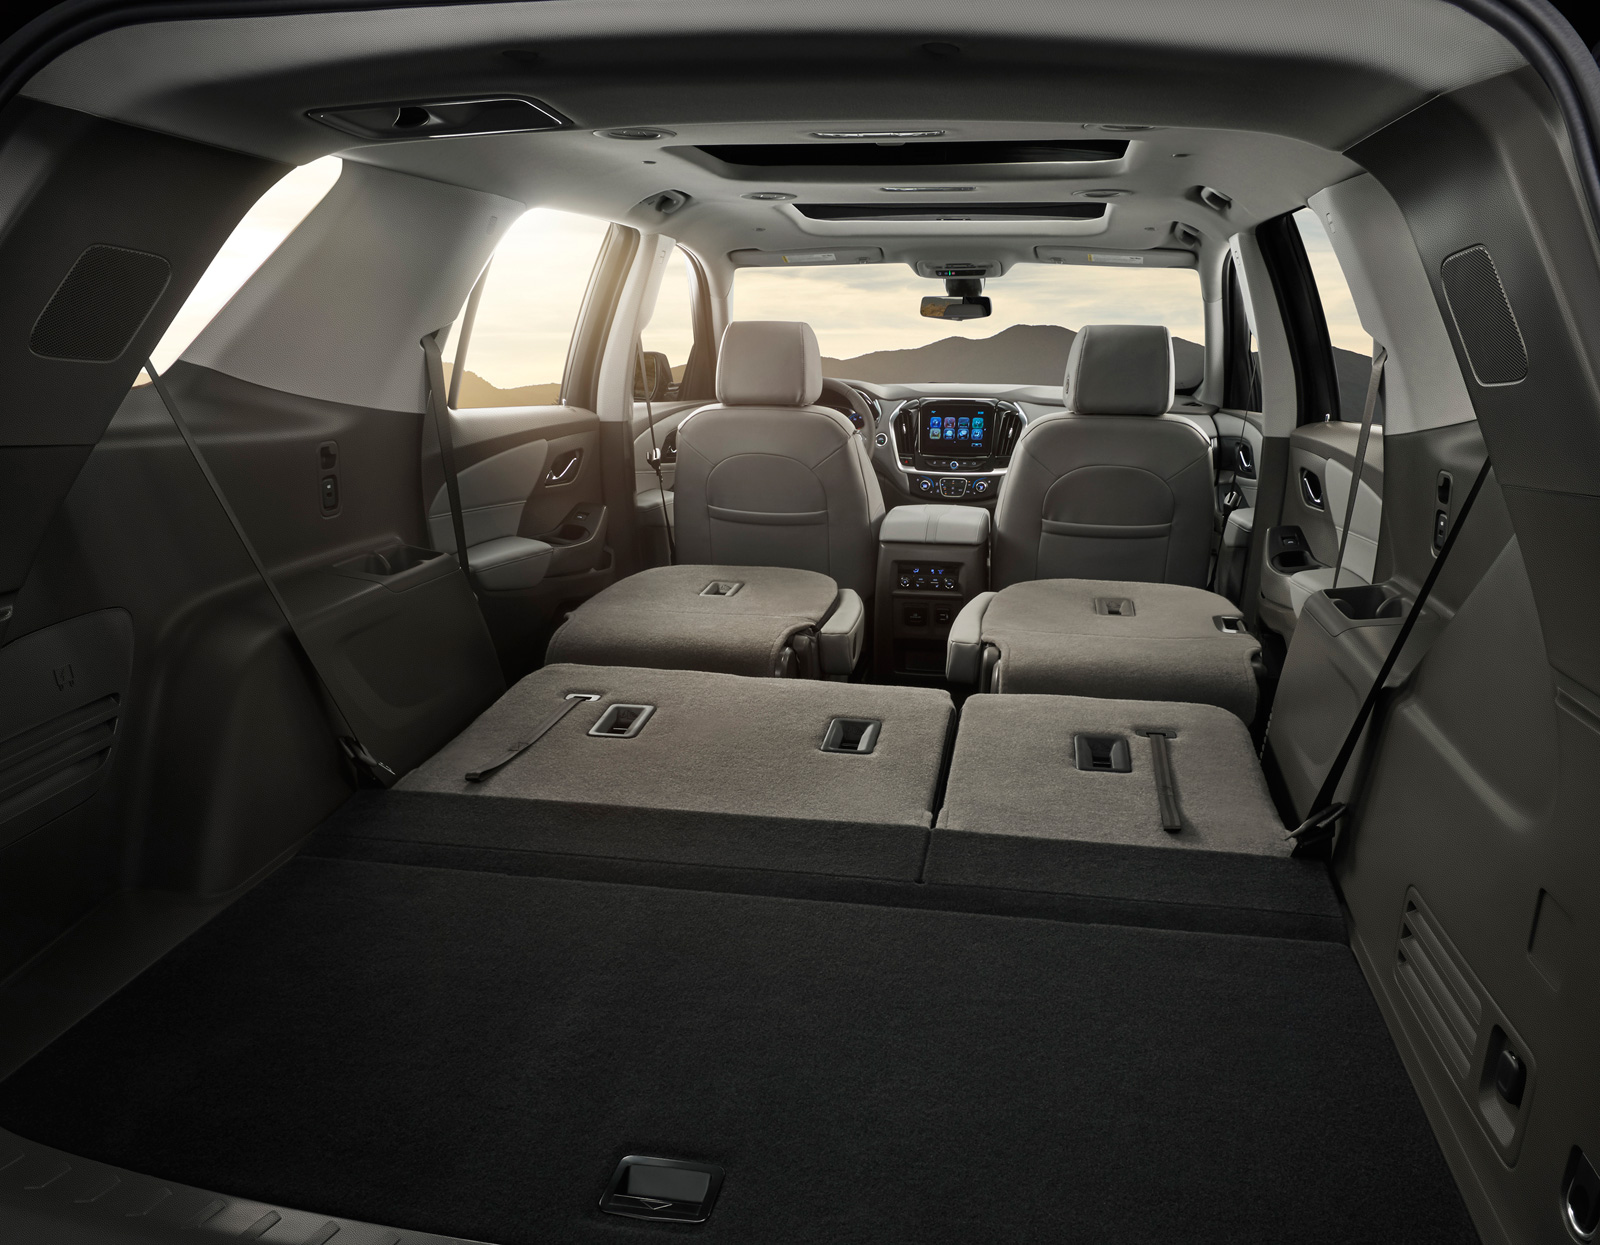 the 2018 traverse is expected to offer best in class passenger volume as well